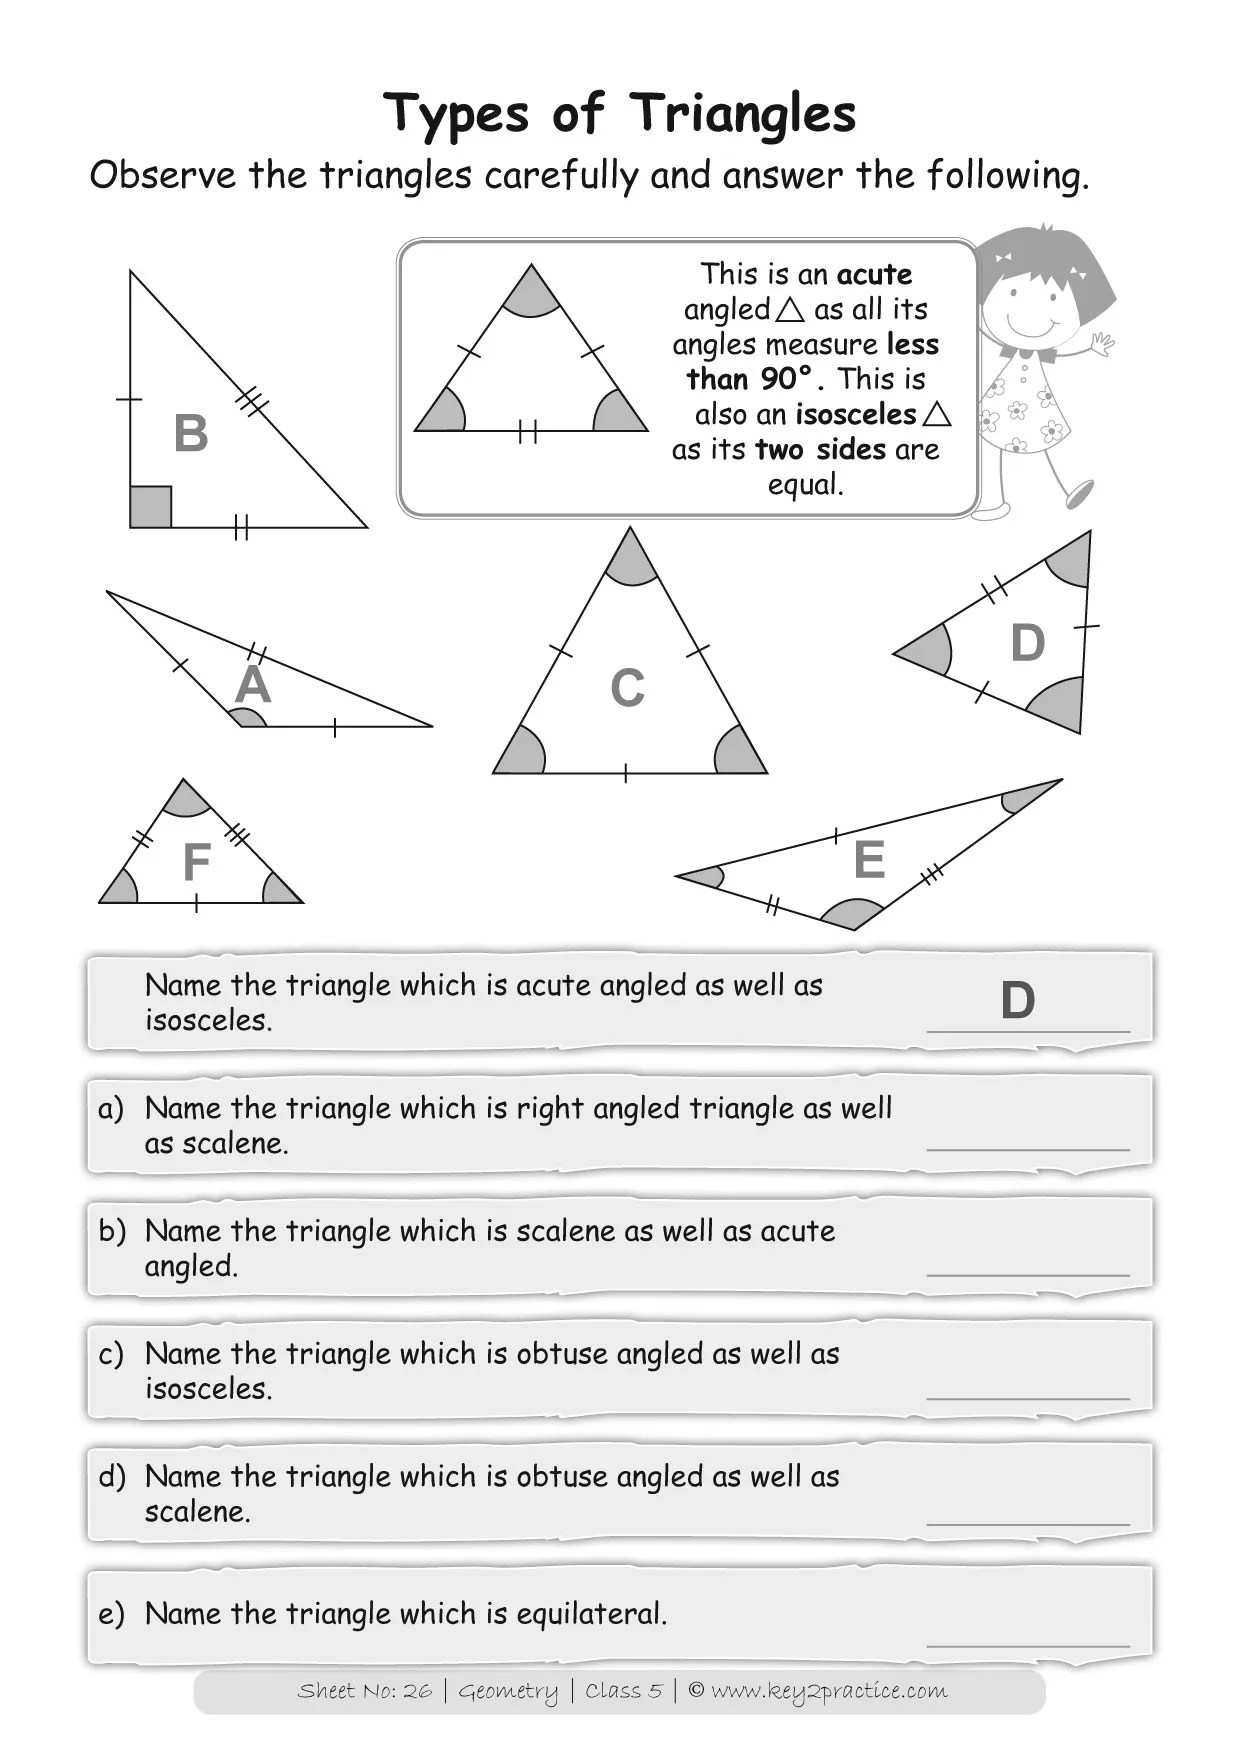 hight resolution of Types of Angles Worksheets Grade 5 Maths - key2practice Workbooks